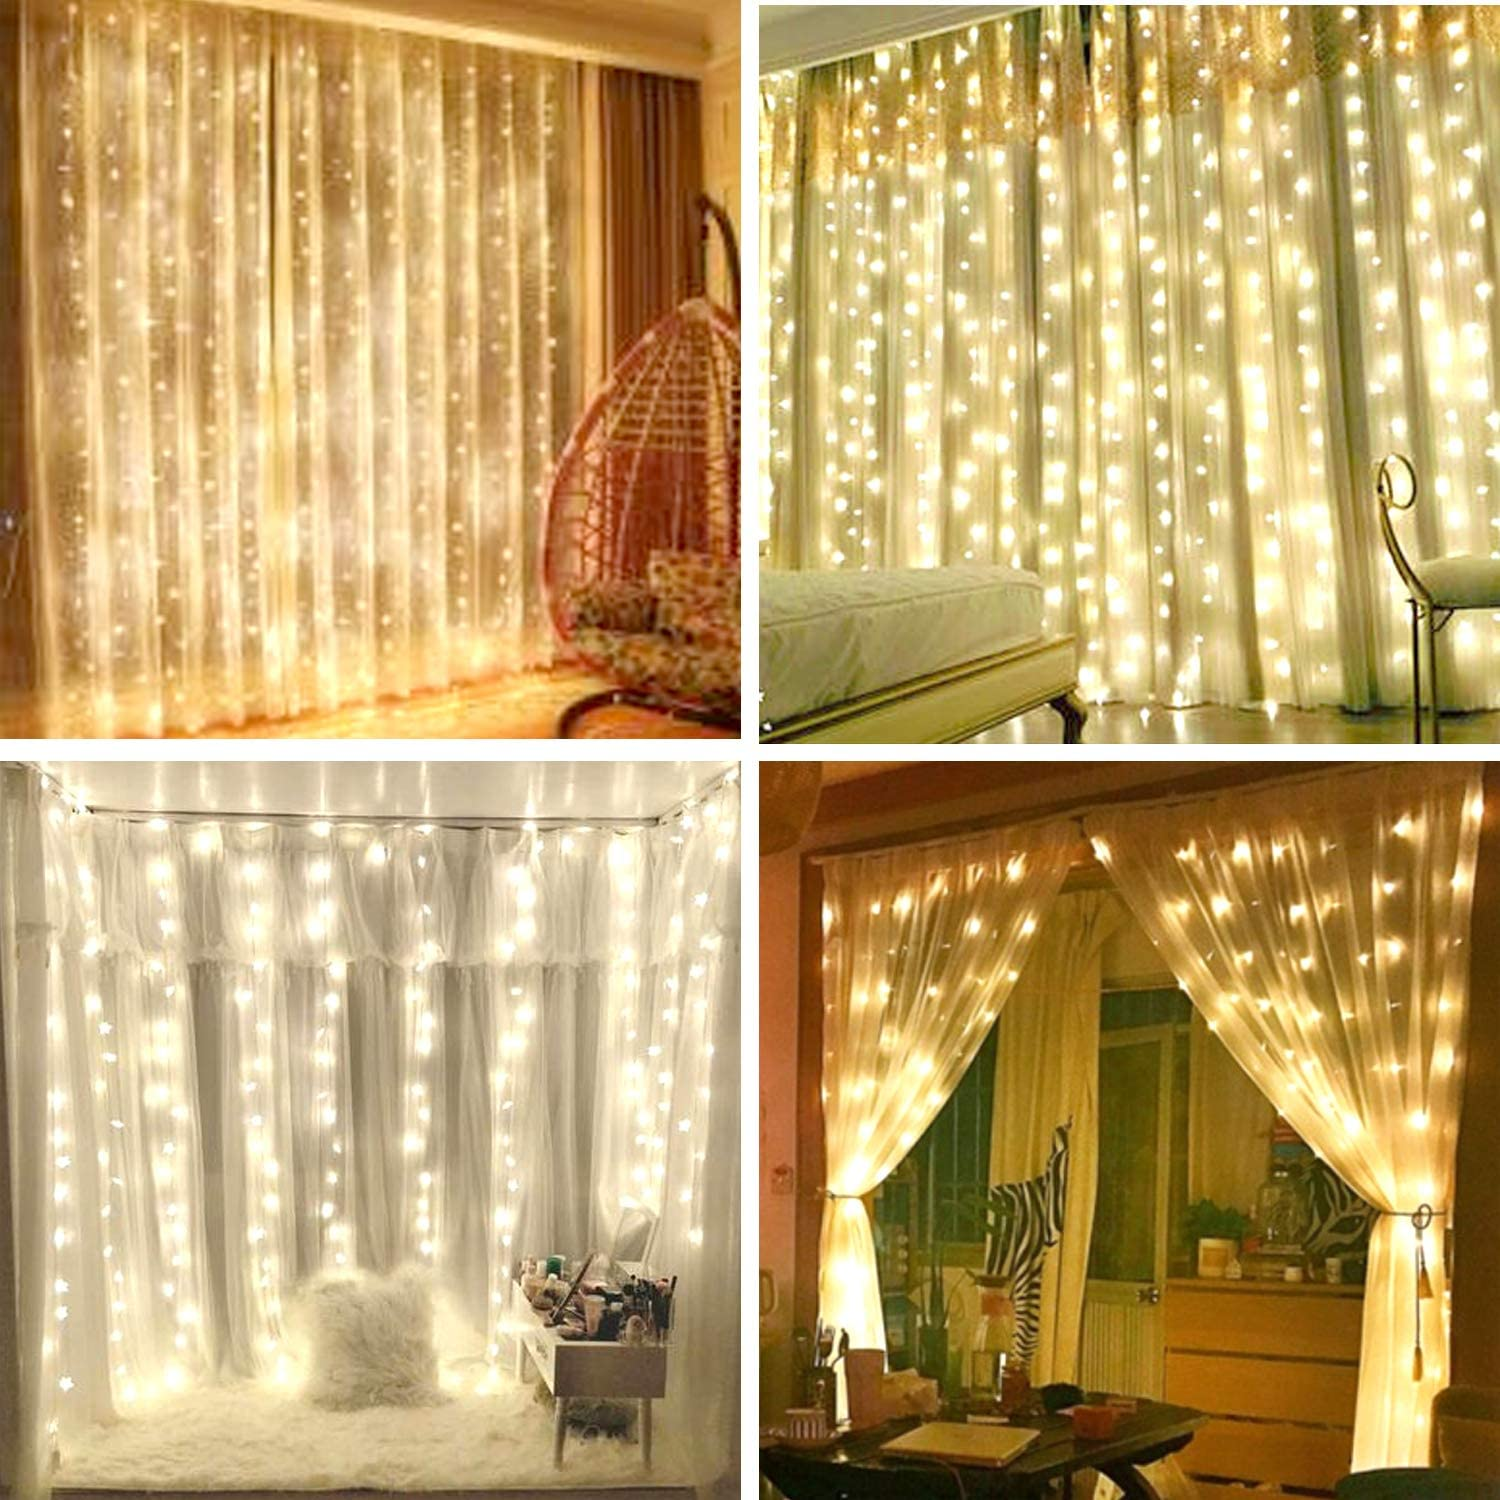 Curtain Light,8 Modes Lighting LED String Lights Remote Control USB Powered Waterproof for Christmas Bedroom Party Wedding Home Garden Decorations(Warm White) (9.8ft X 6.5ft) Curtain is NOT included.